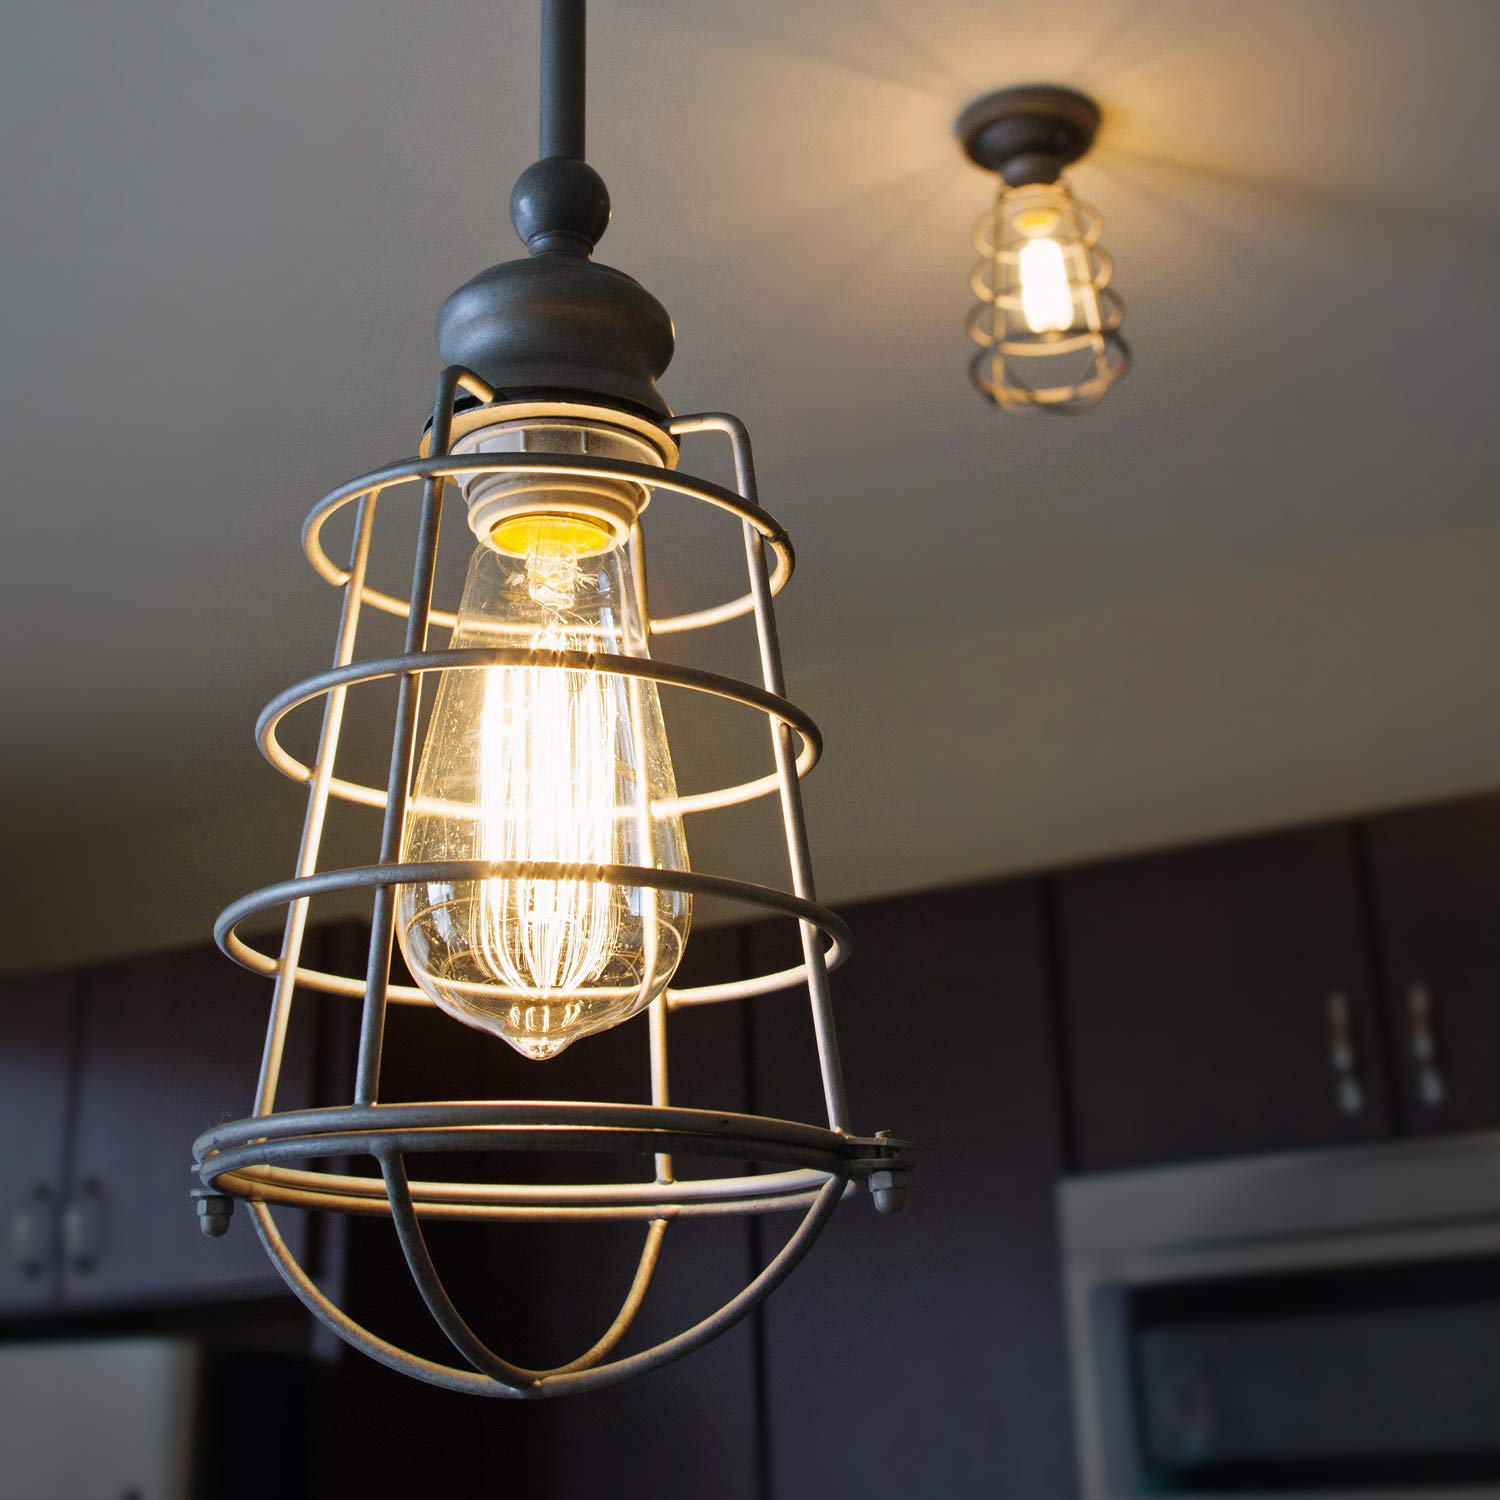 Design House Ajax Industrial Modern Indoor Light with Metal Wire Cage